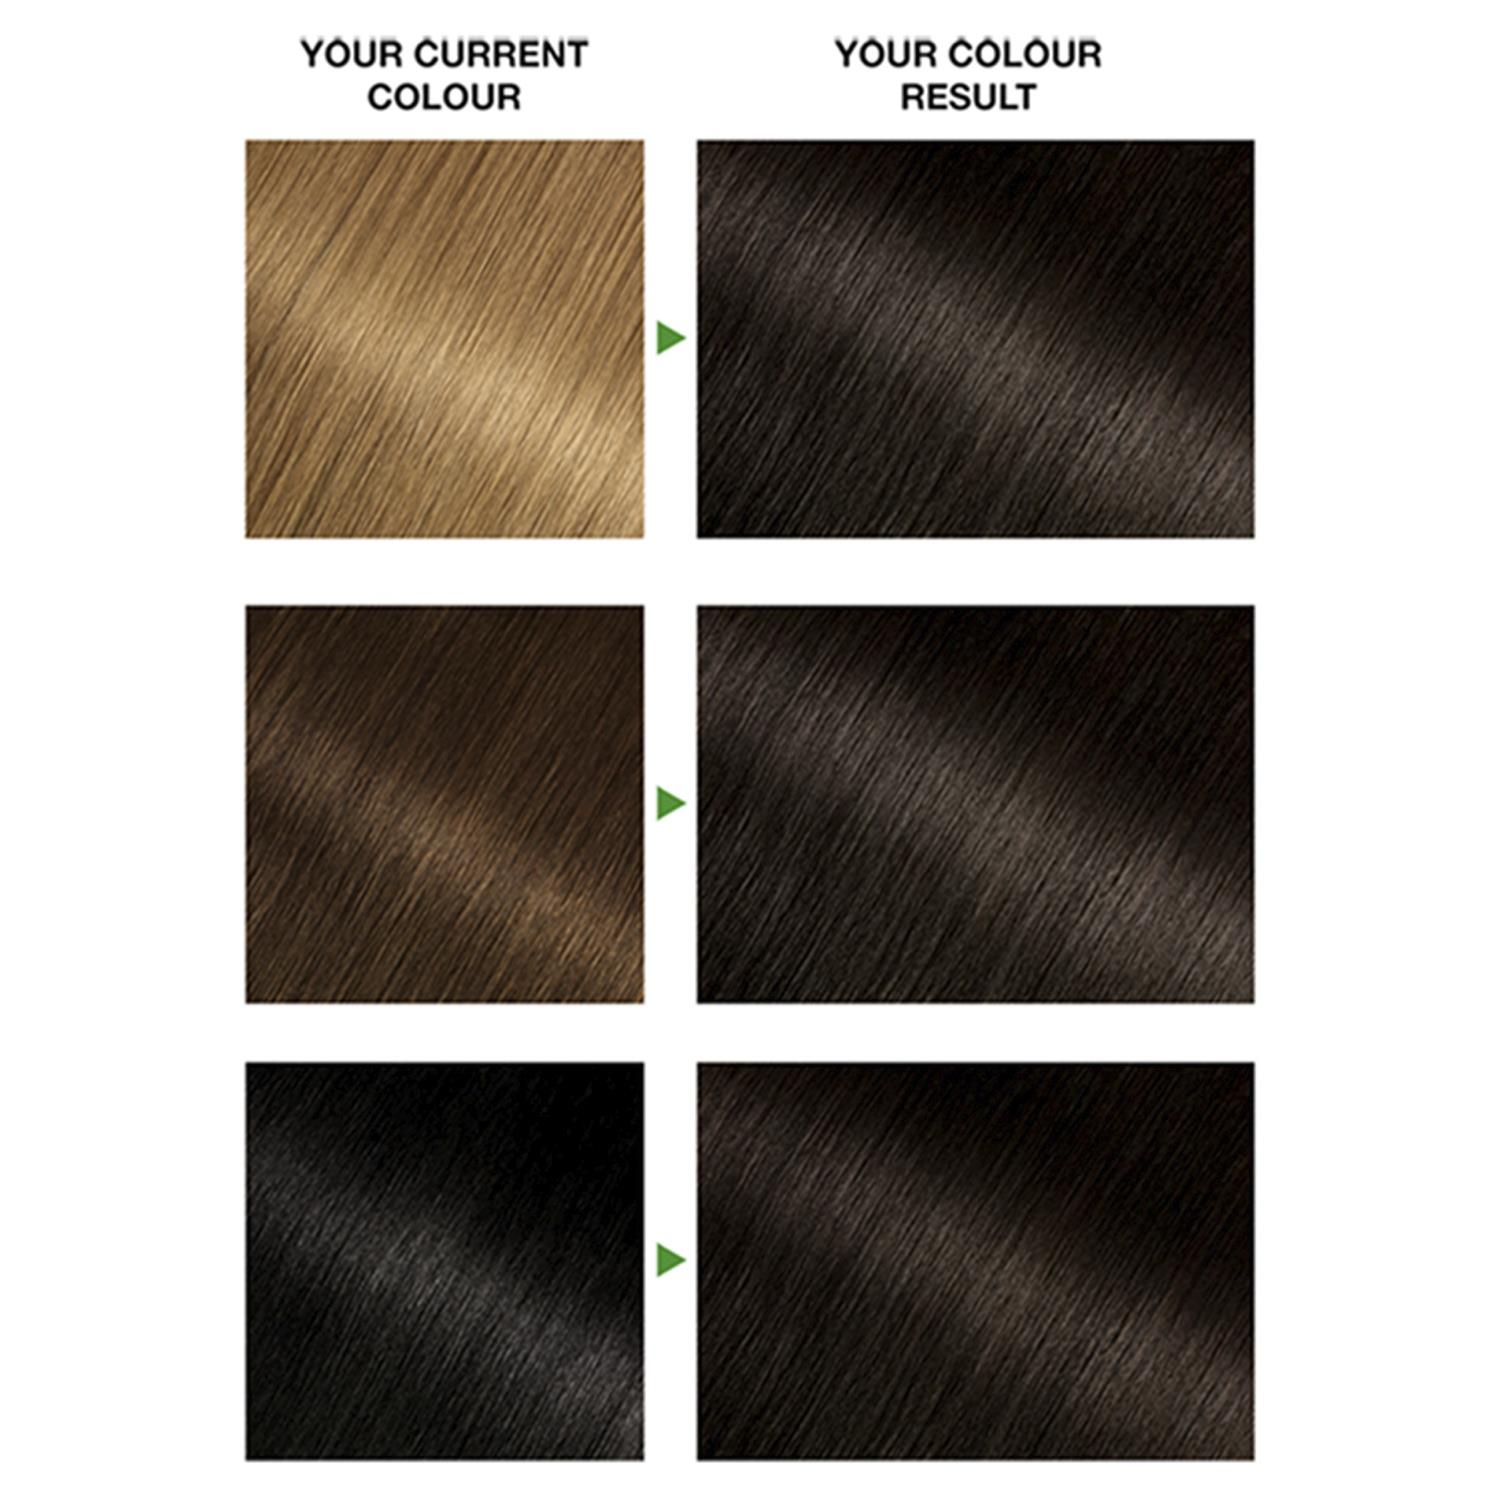 thumbnail 35 - 3 Pack Garnier Nutrisse Permanent Hair Dye With Different Shades